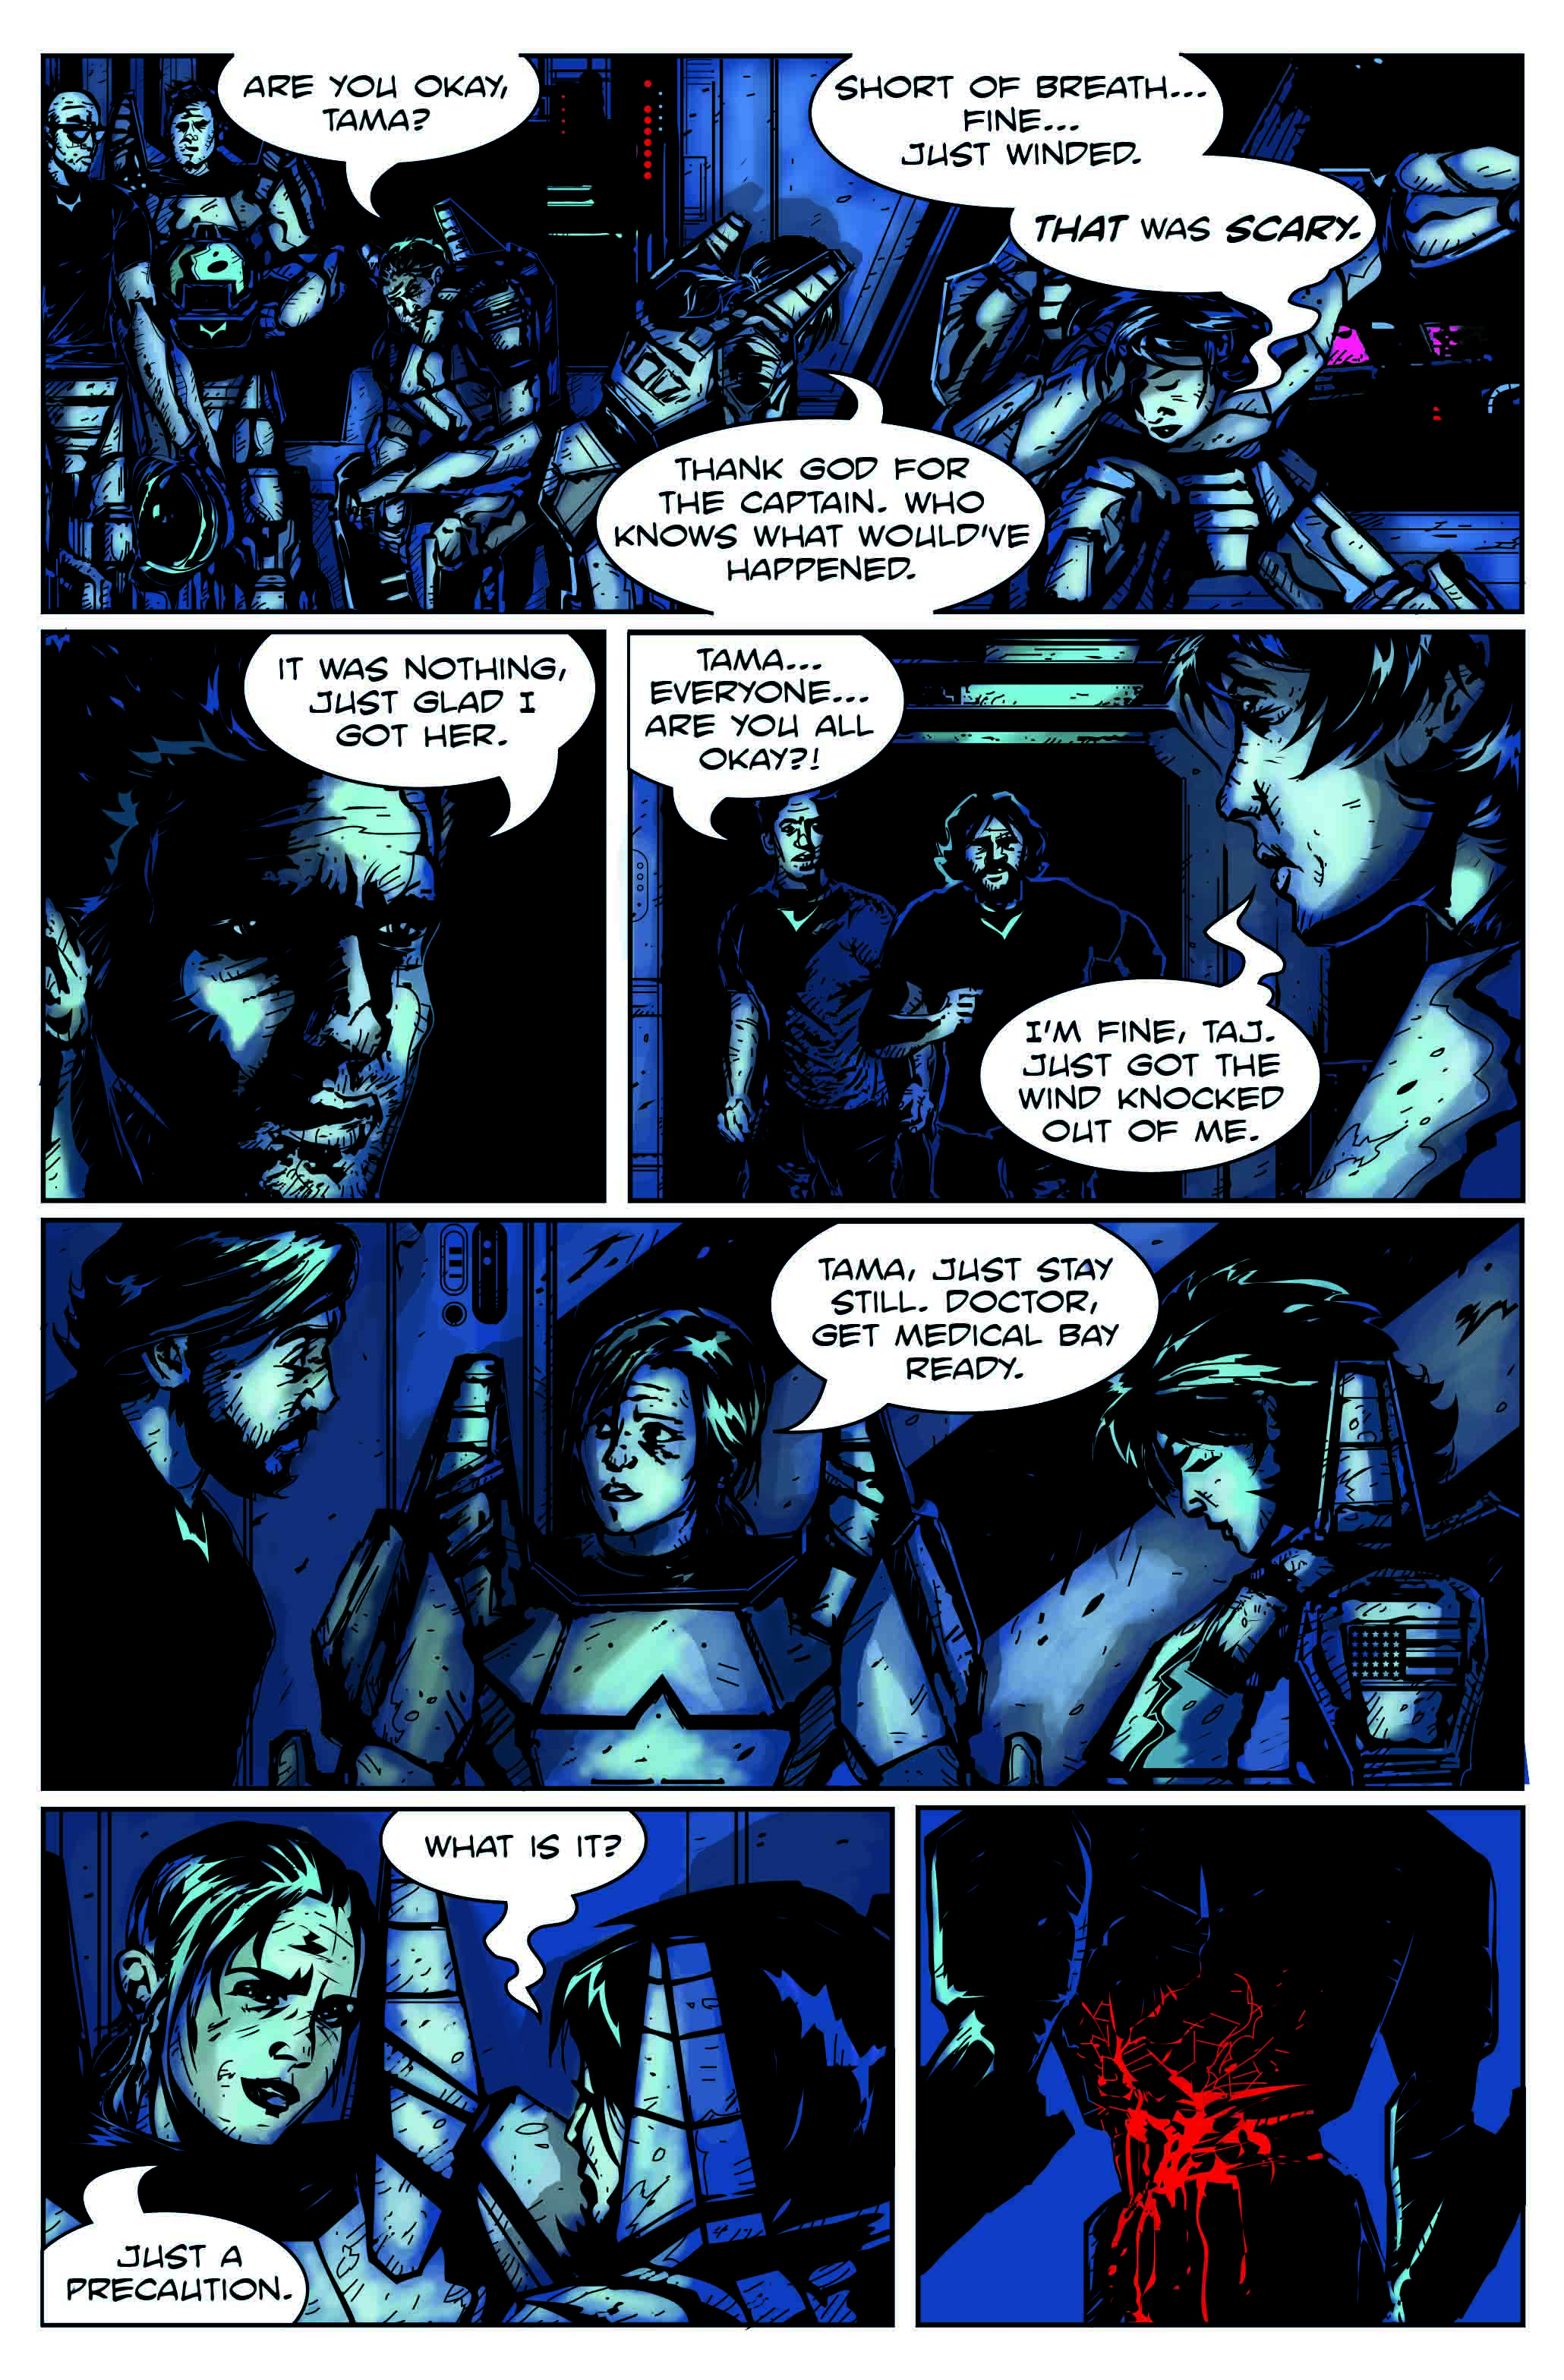 Code Name Talamh Issue 1 Remix-Page 8